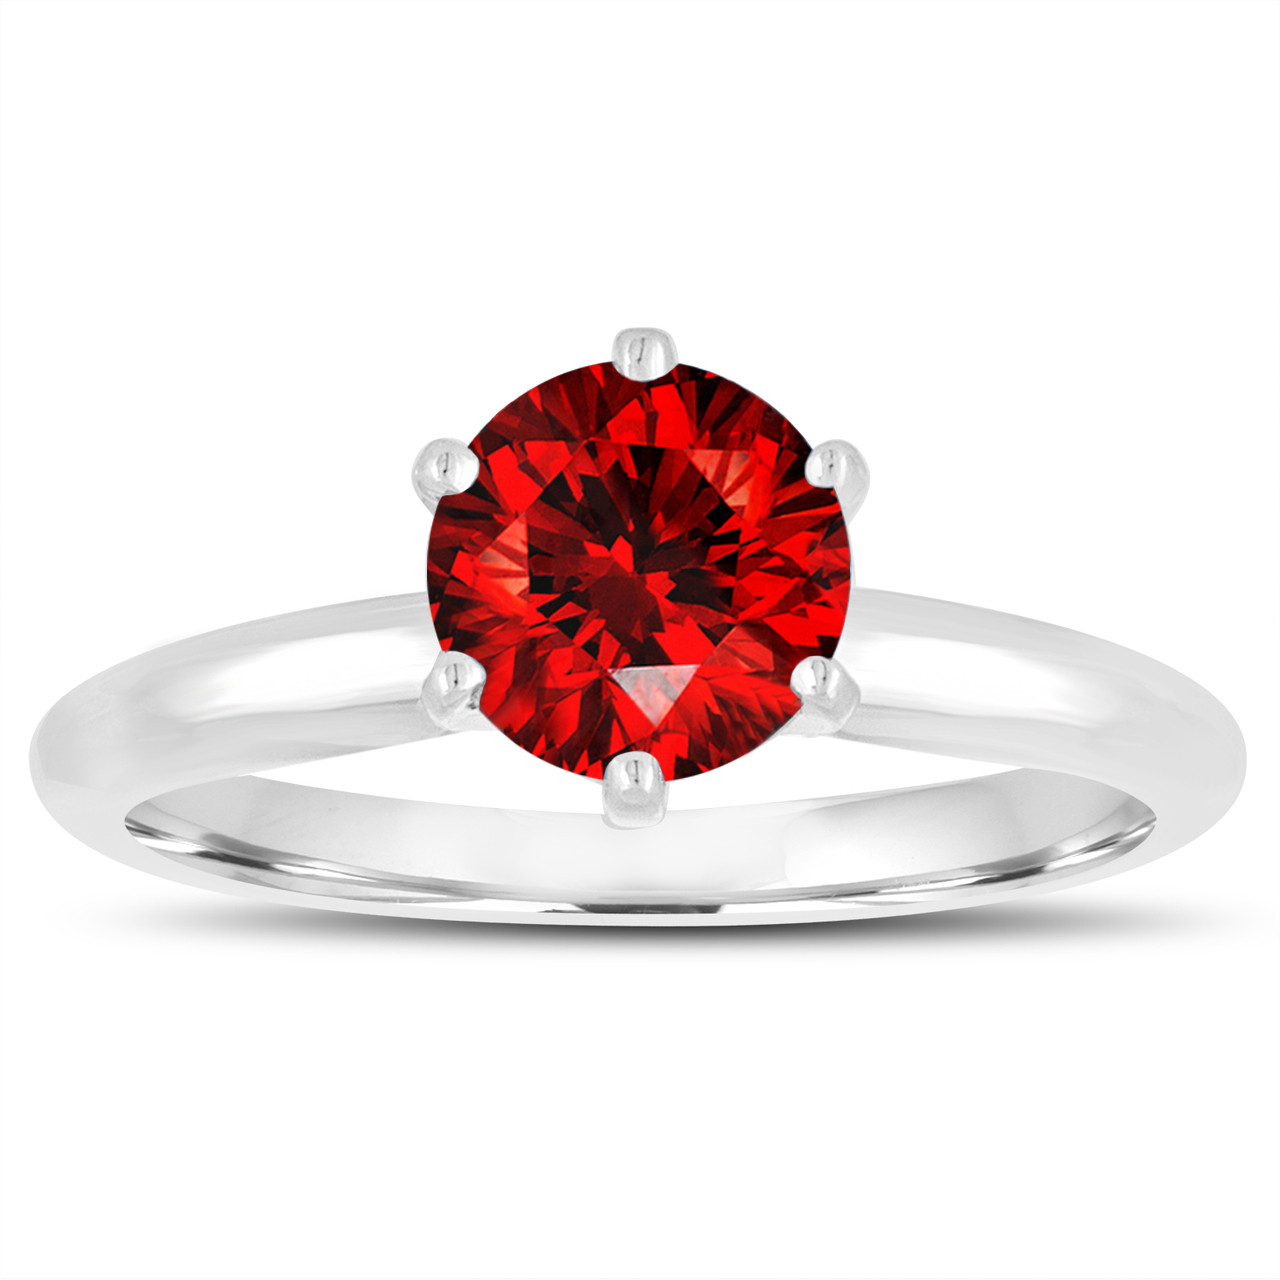 070 Carat Fancy Red Diamond Solitaire Engagement Ring 14K